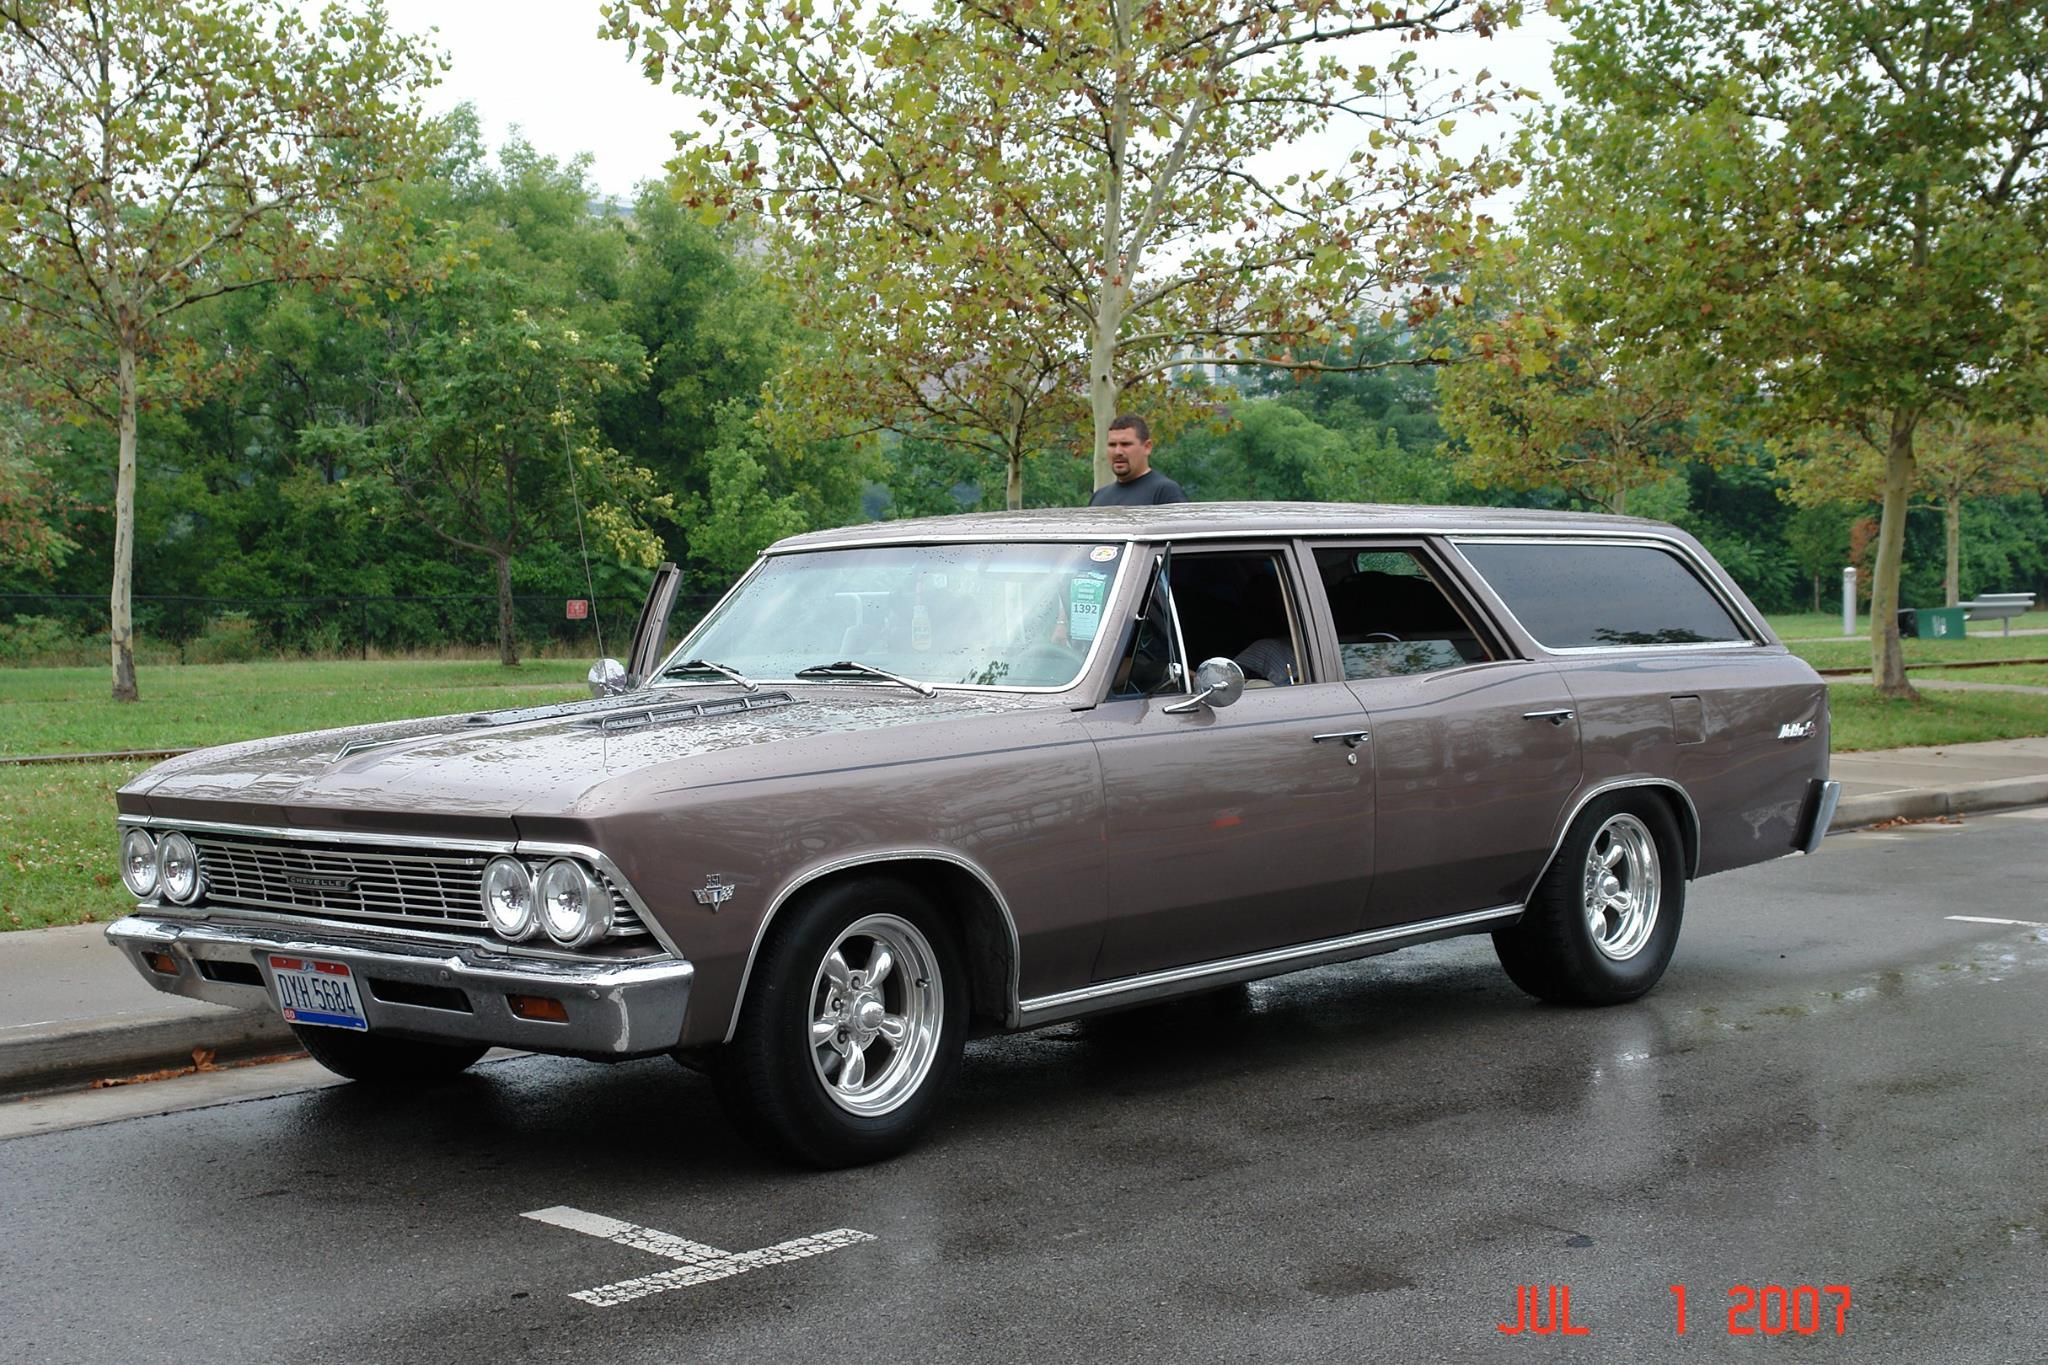 1966 Chevrolet Chevelle Wagon Four Door Cool Family Cruiser Chevrolet Chevelle Chevrolet Chevelle